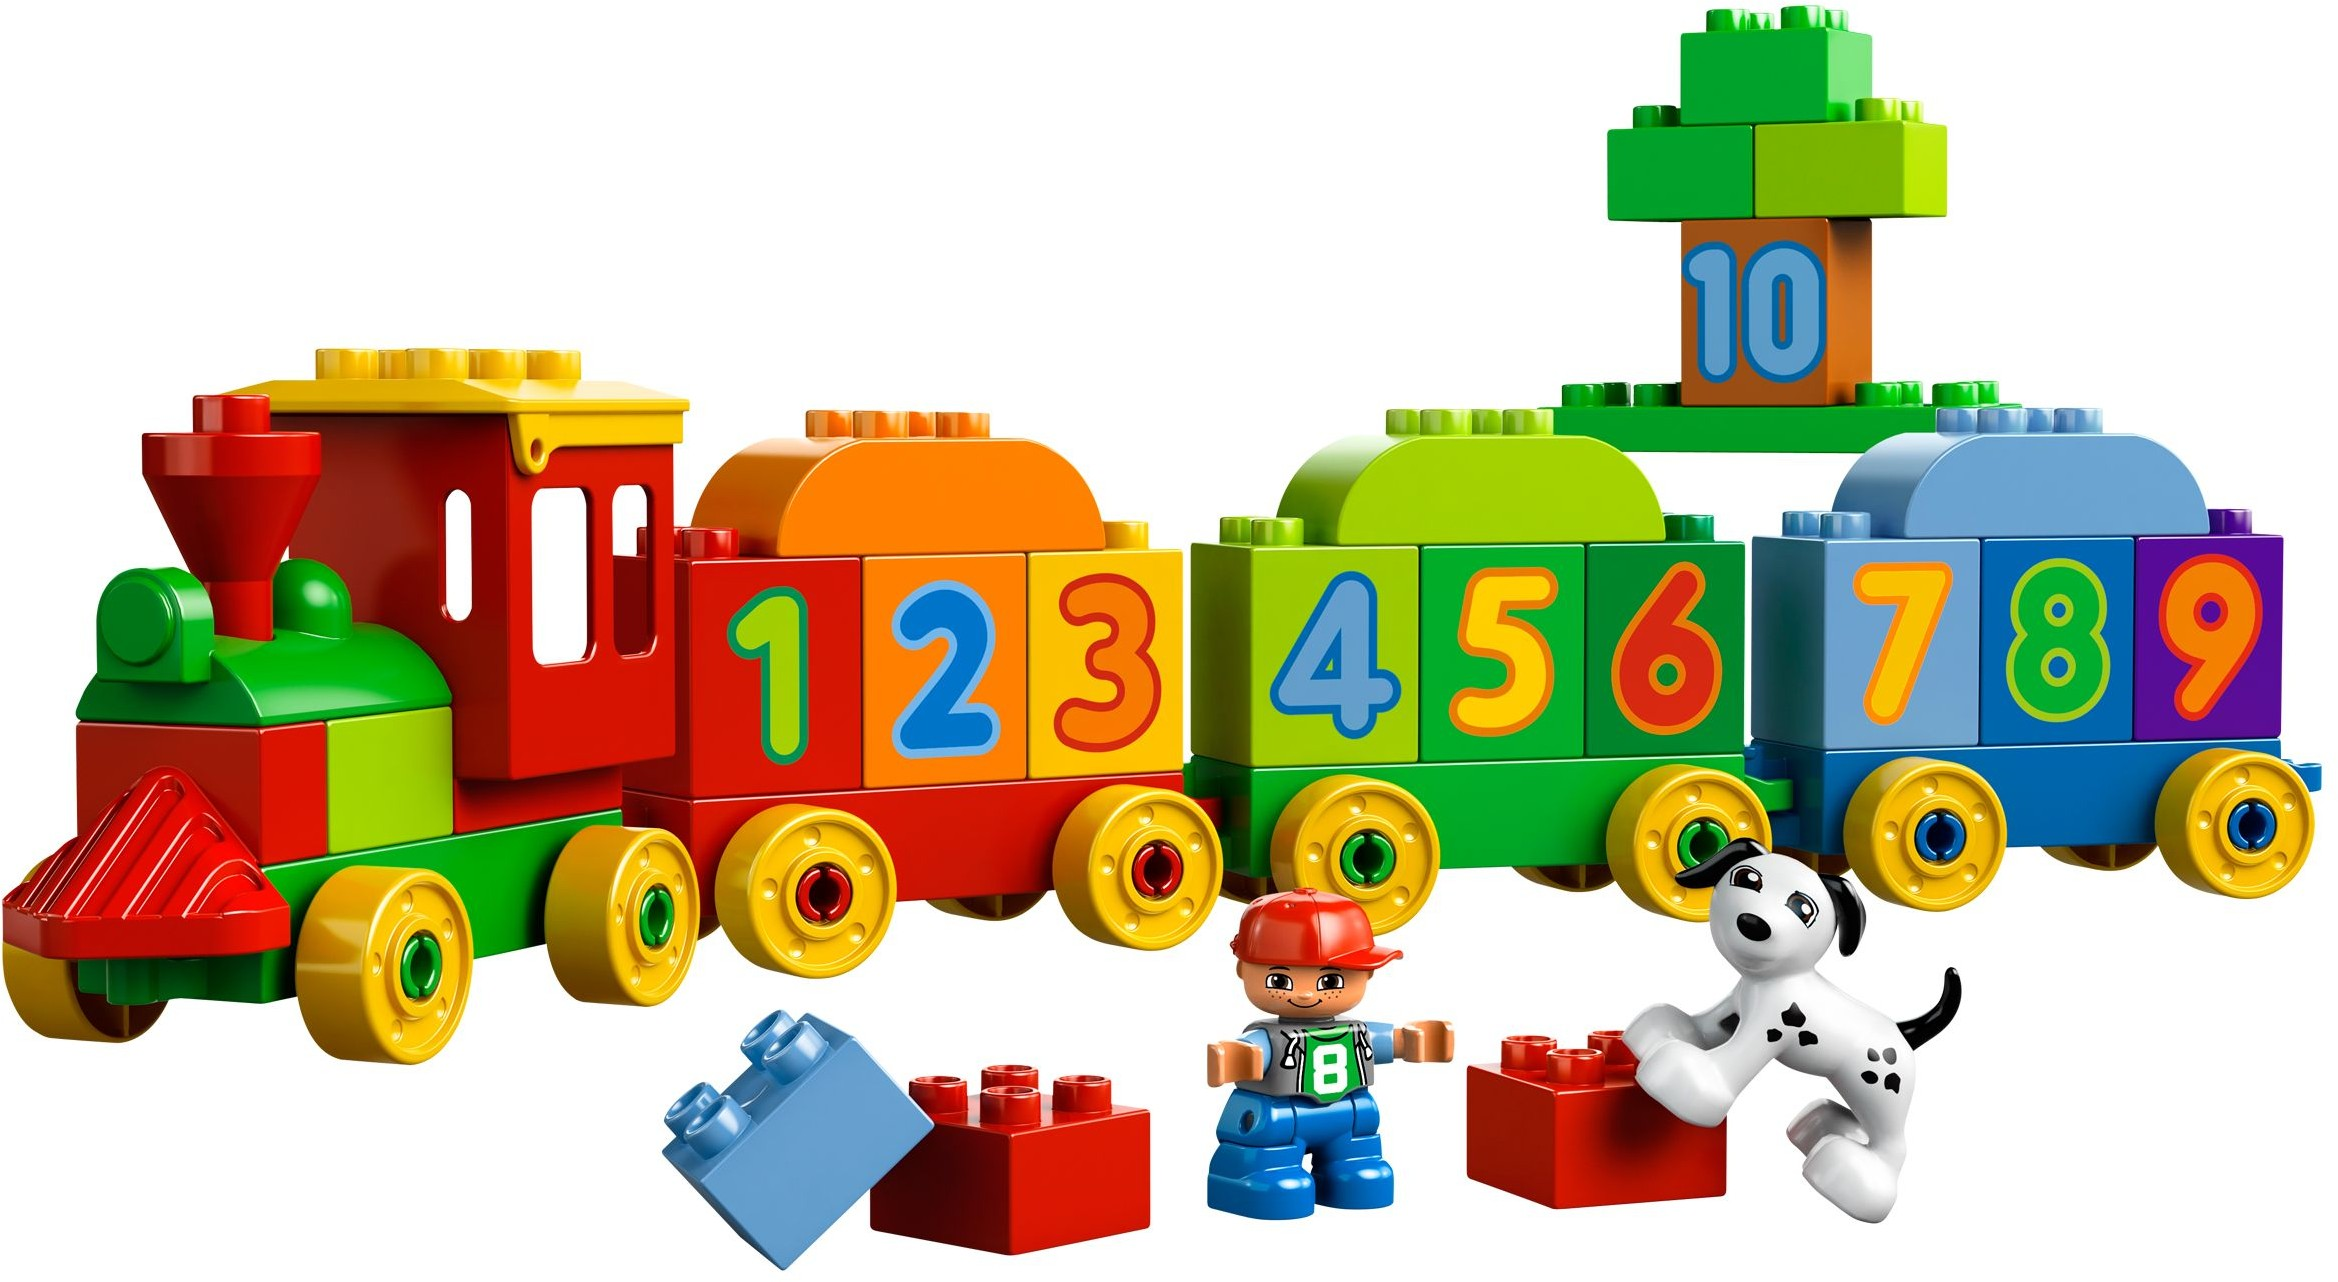 Lego clipart childrens toy Toys Instructions Childrens Train Lego